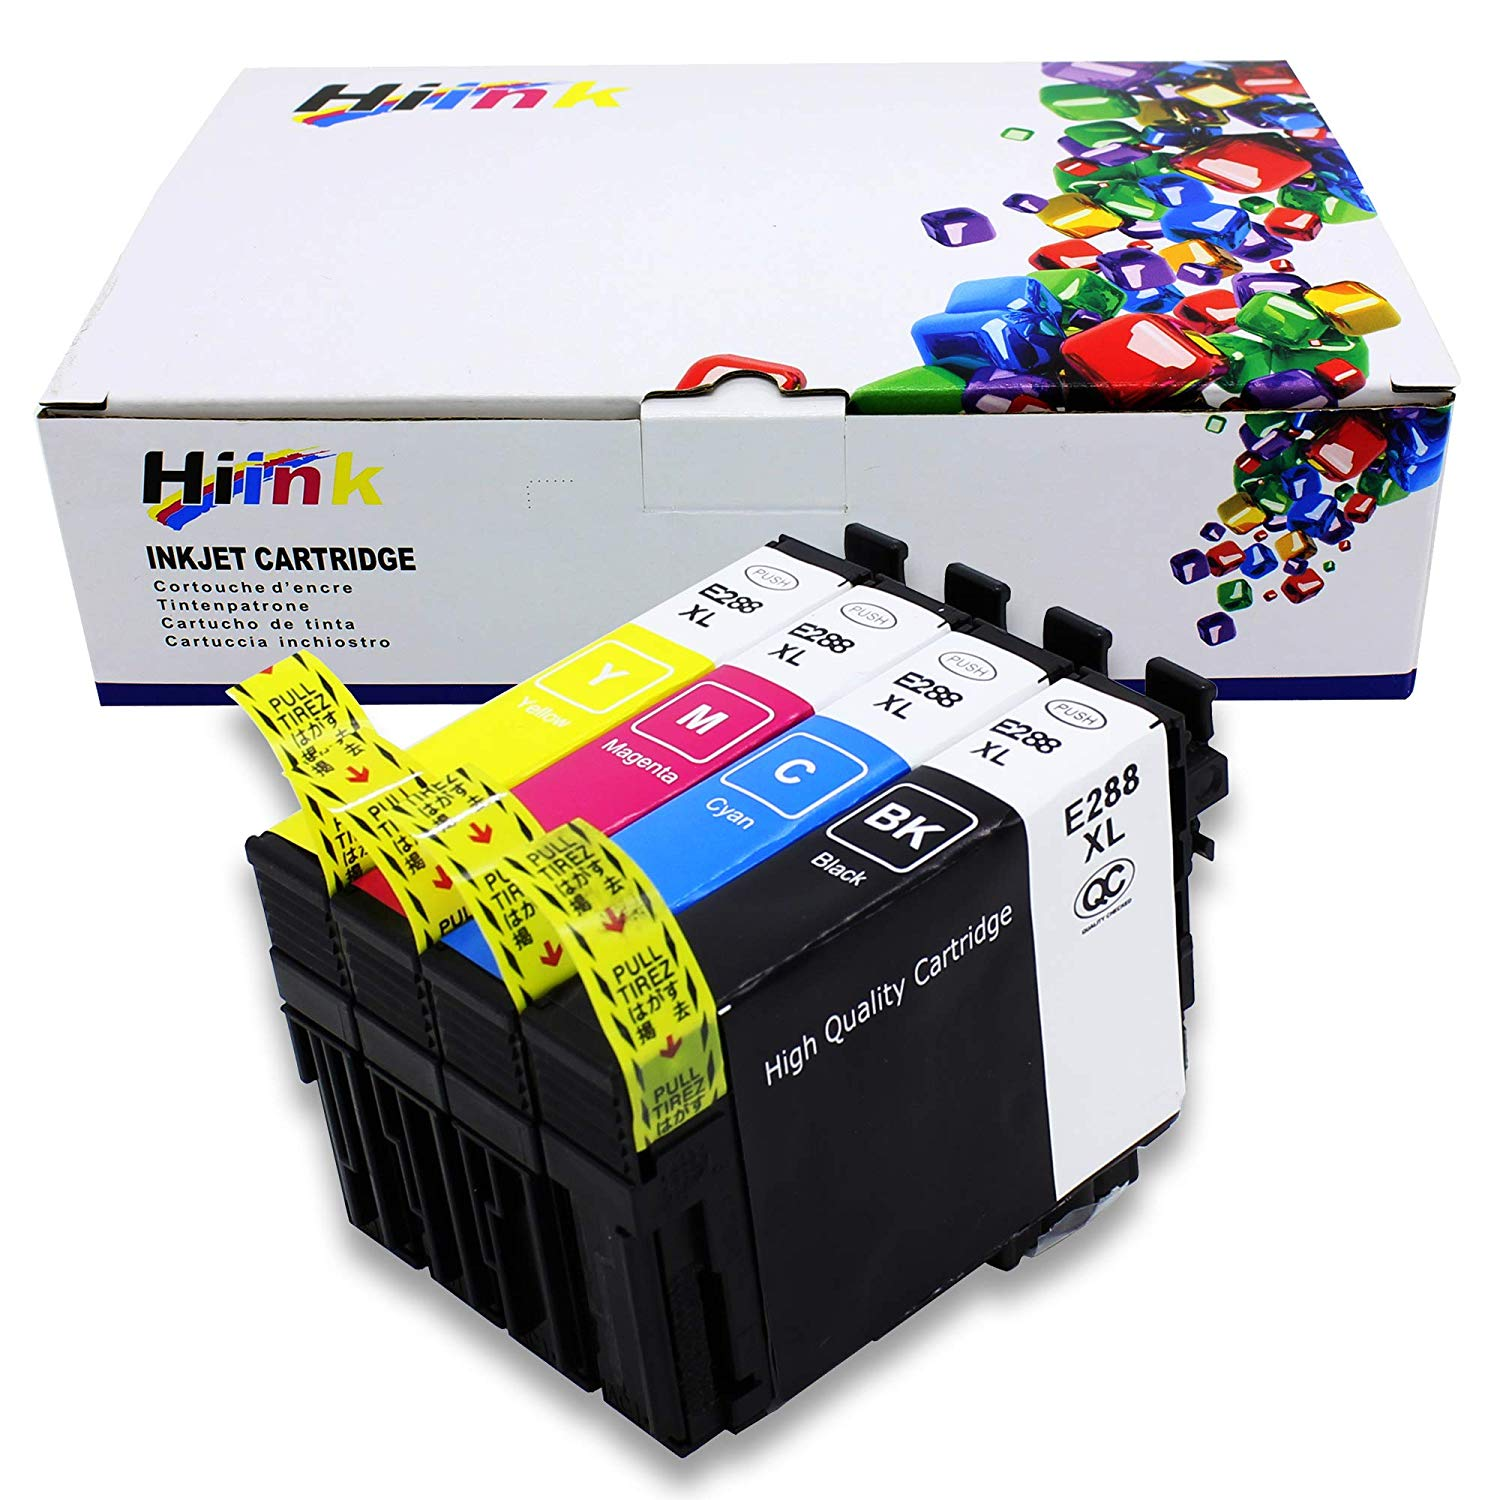 HIINK Remanufactured Ink Cartridge Replacement for Epson T288 288XL Ink Cartridge High Yiled use with Epson Expression XP-330 XP-340 XP-430 XP-434 XP-440 XP-446 (Black Cyan Magenta Yellow, 4 Pack)